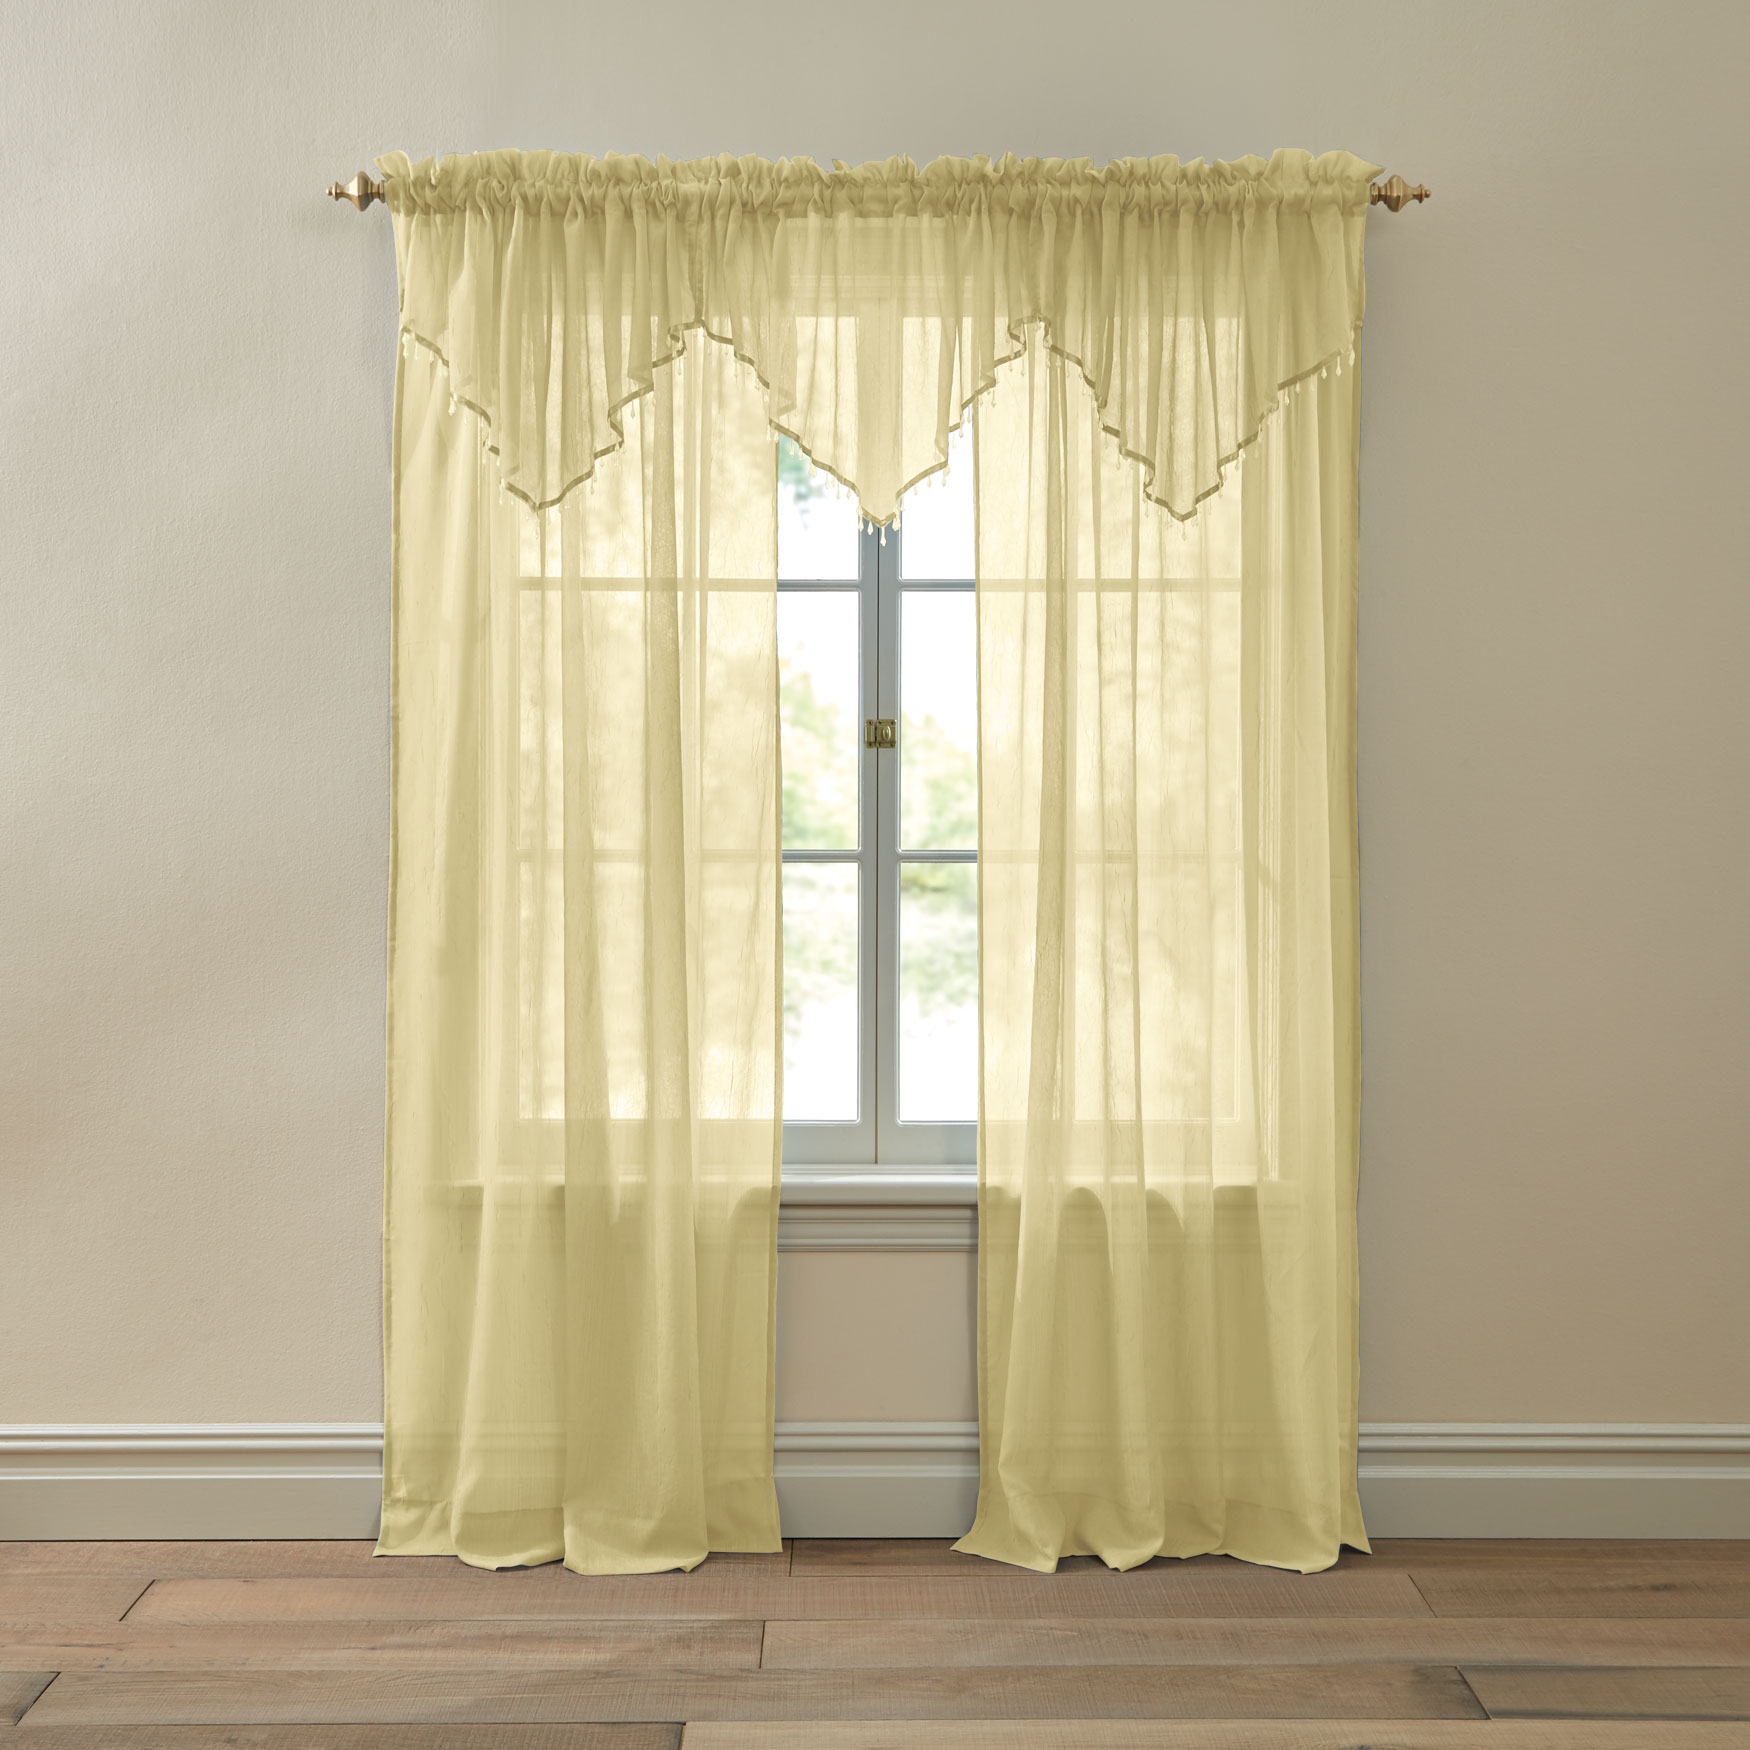 BH Studio Crushed Voile Rod-Pocket Panel,